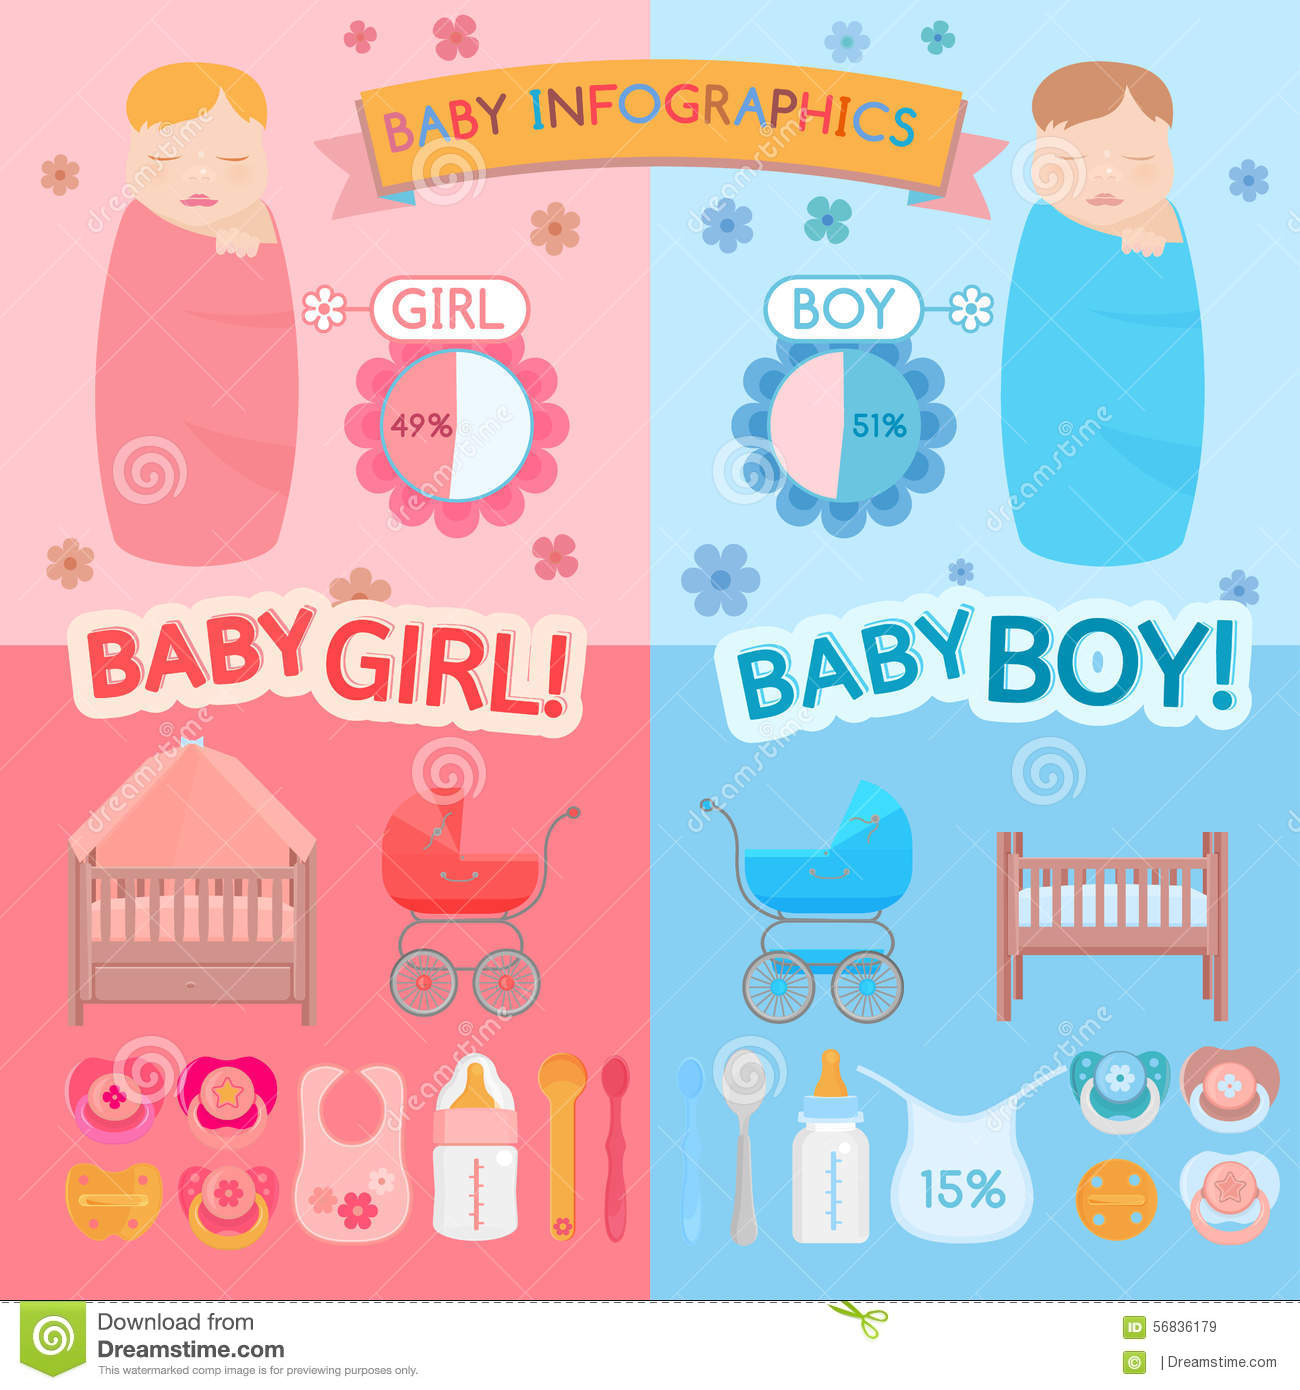 baby infographic stock vector image of pacifier icon 56836179. Black Bedroom Furniture Sets. Home Design Ideas